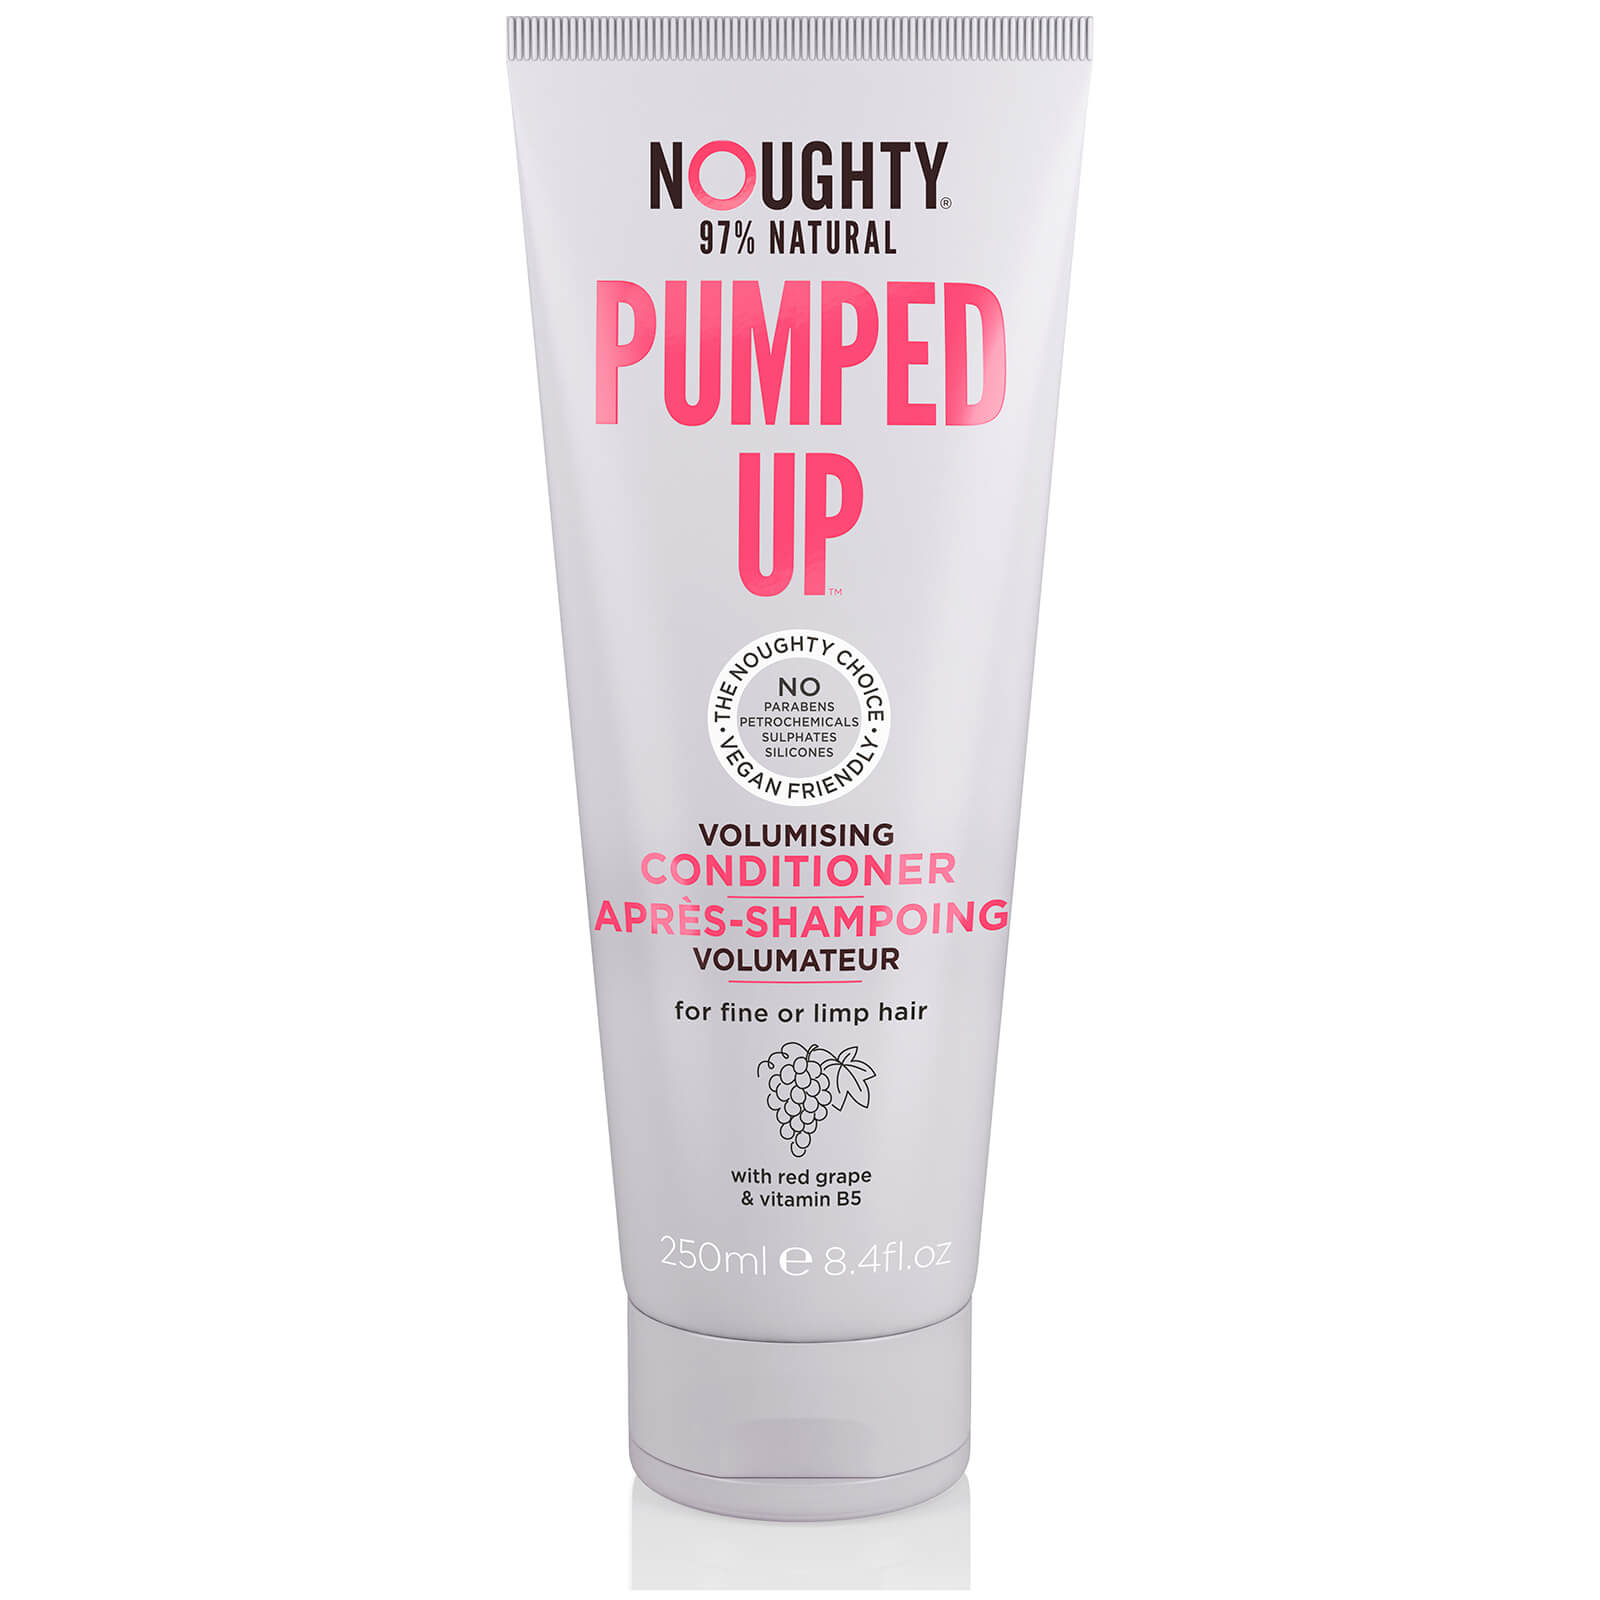 Noughty Pumped Up Conditioner 250ml | Buy Online At RY